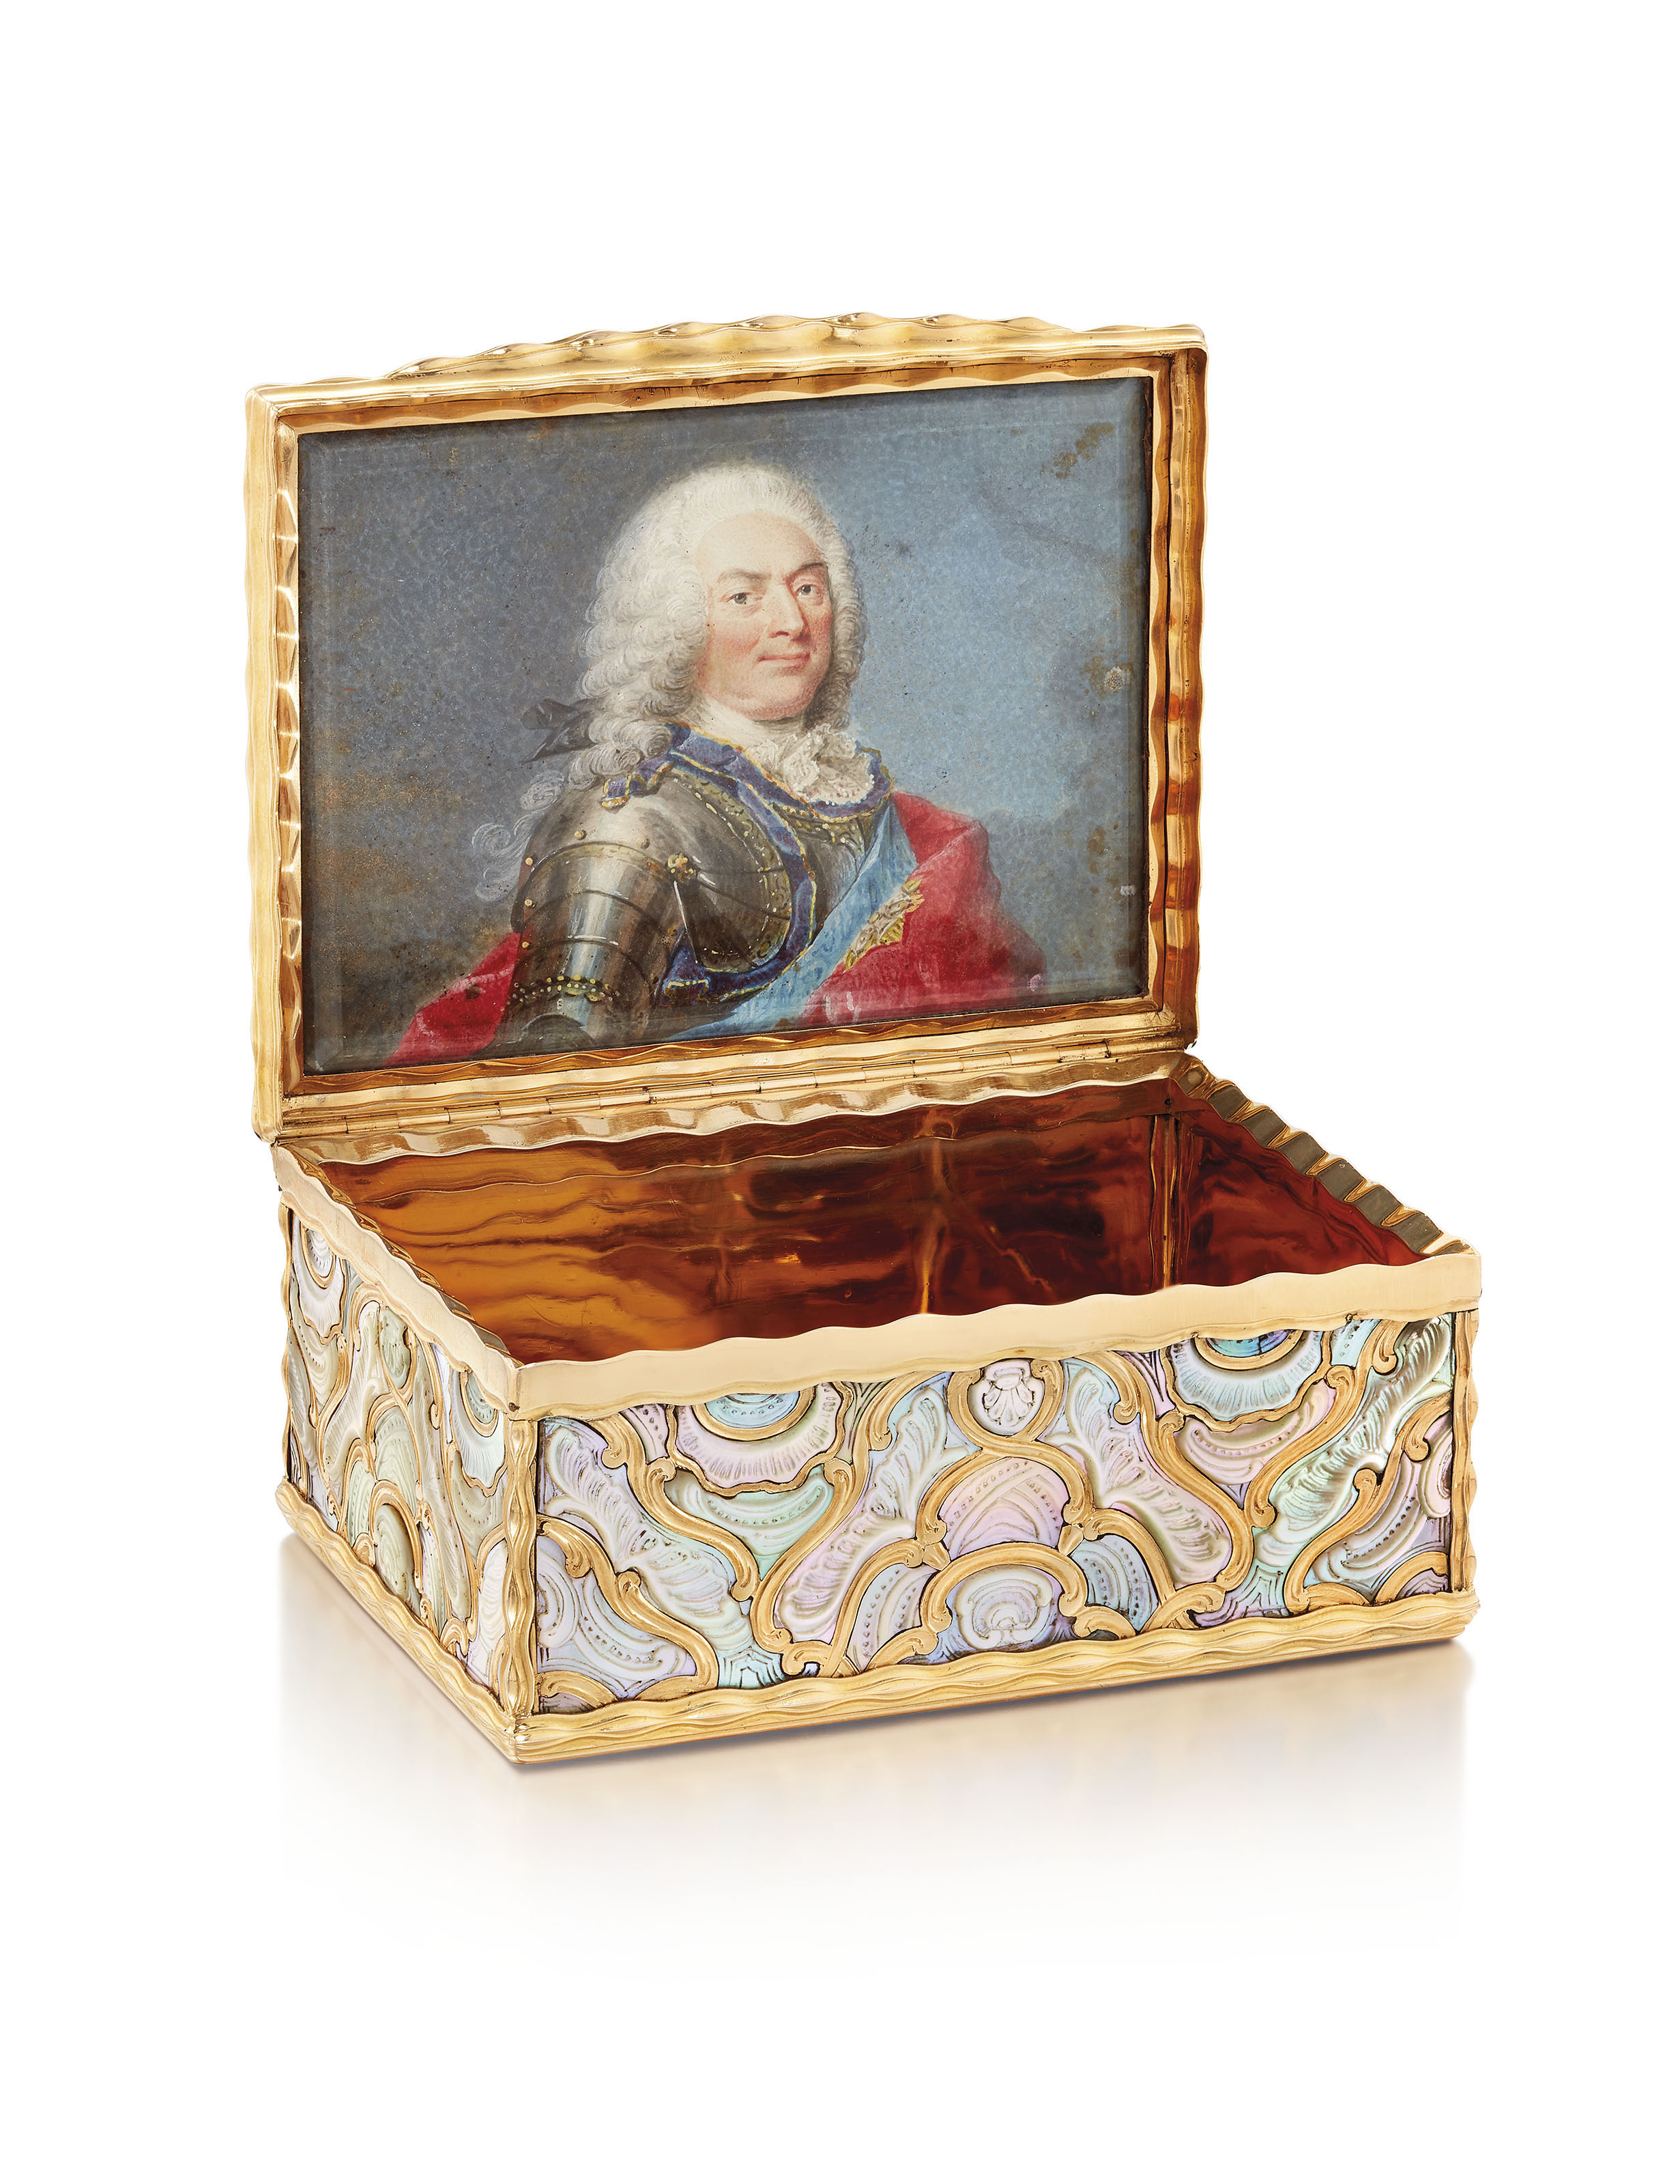 A GERMAN GOLD-MOUNTED MOTHER-OF-PEARL SNUFF-BOX